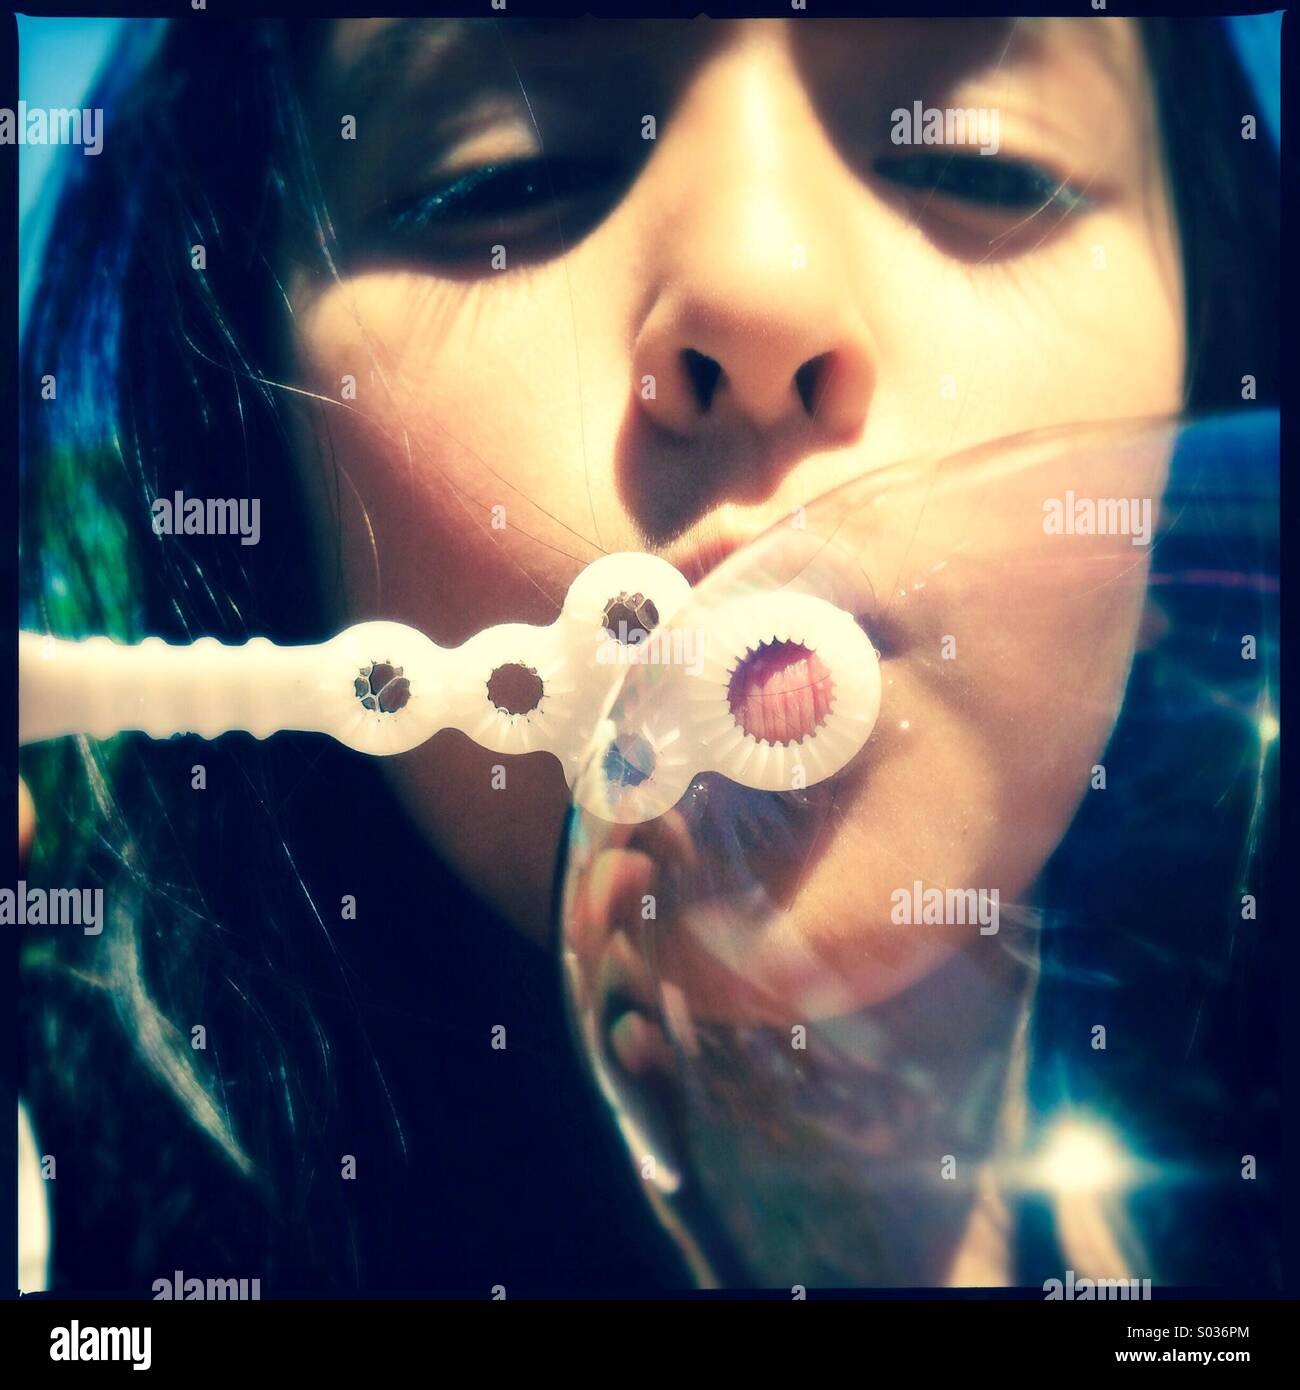 Girl blowing bubble - Stock Image